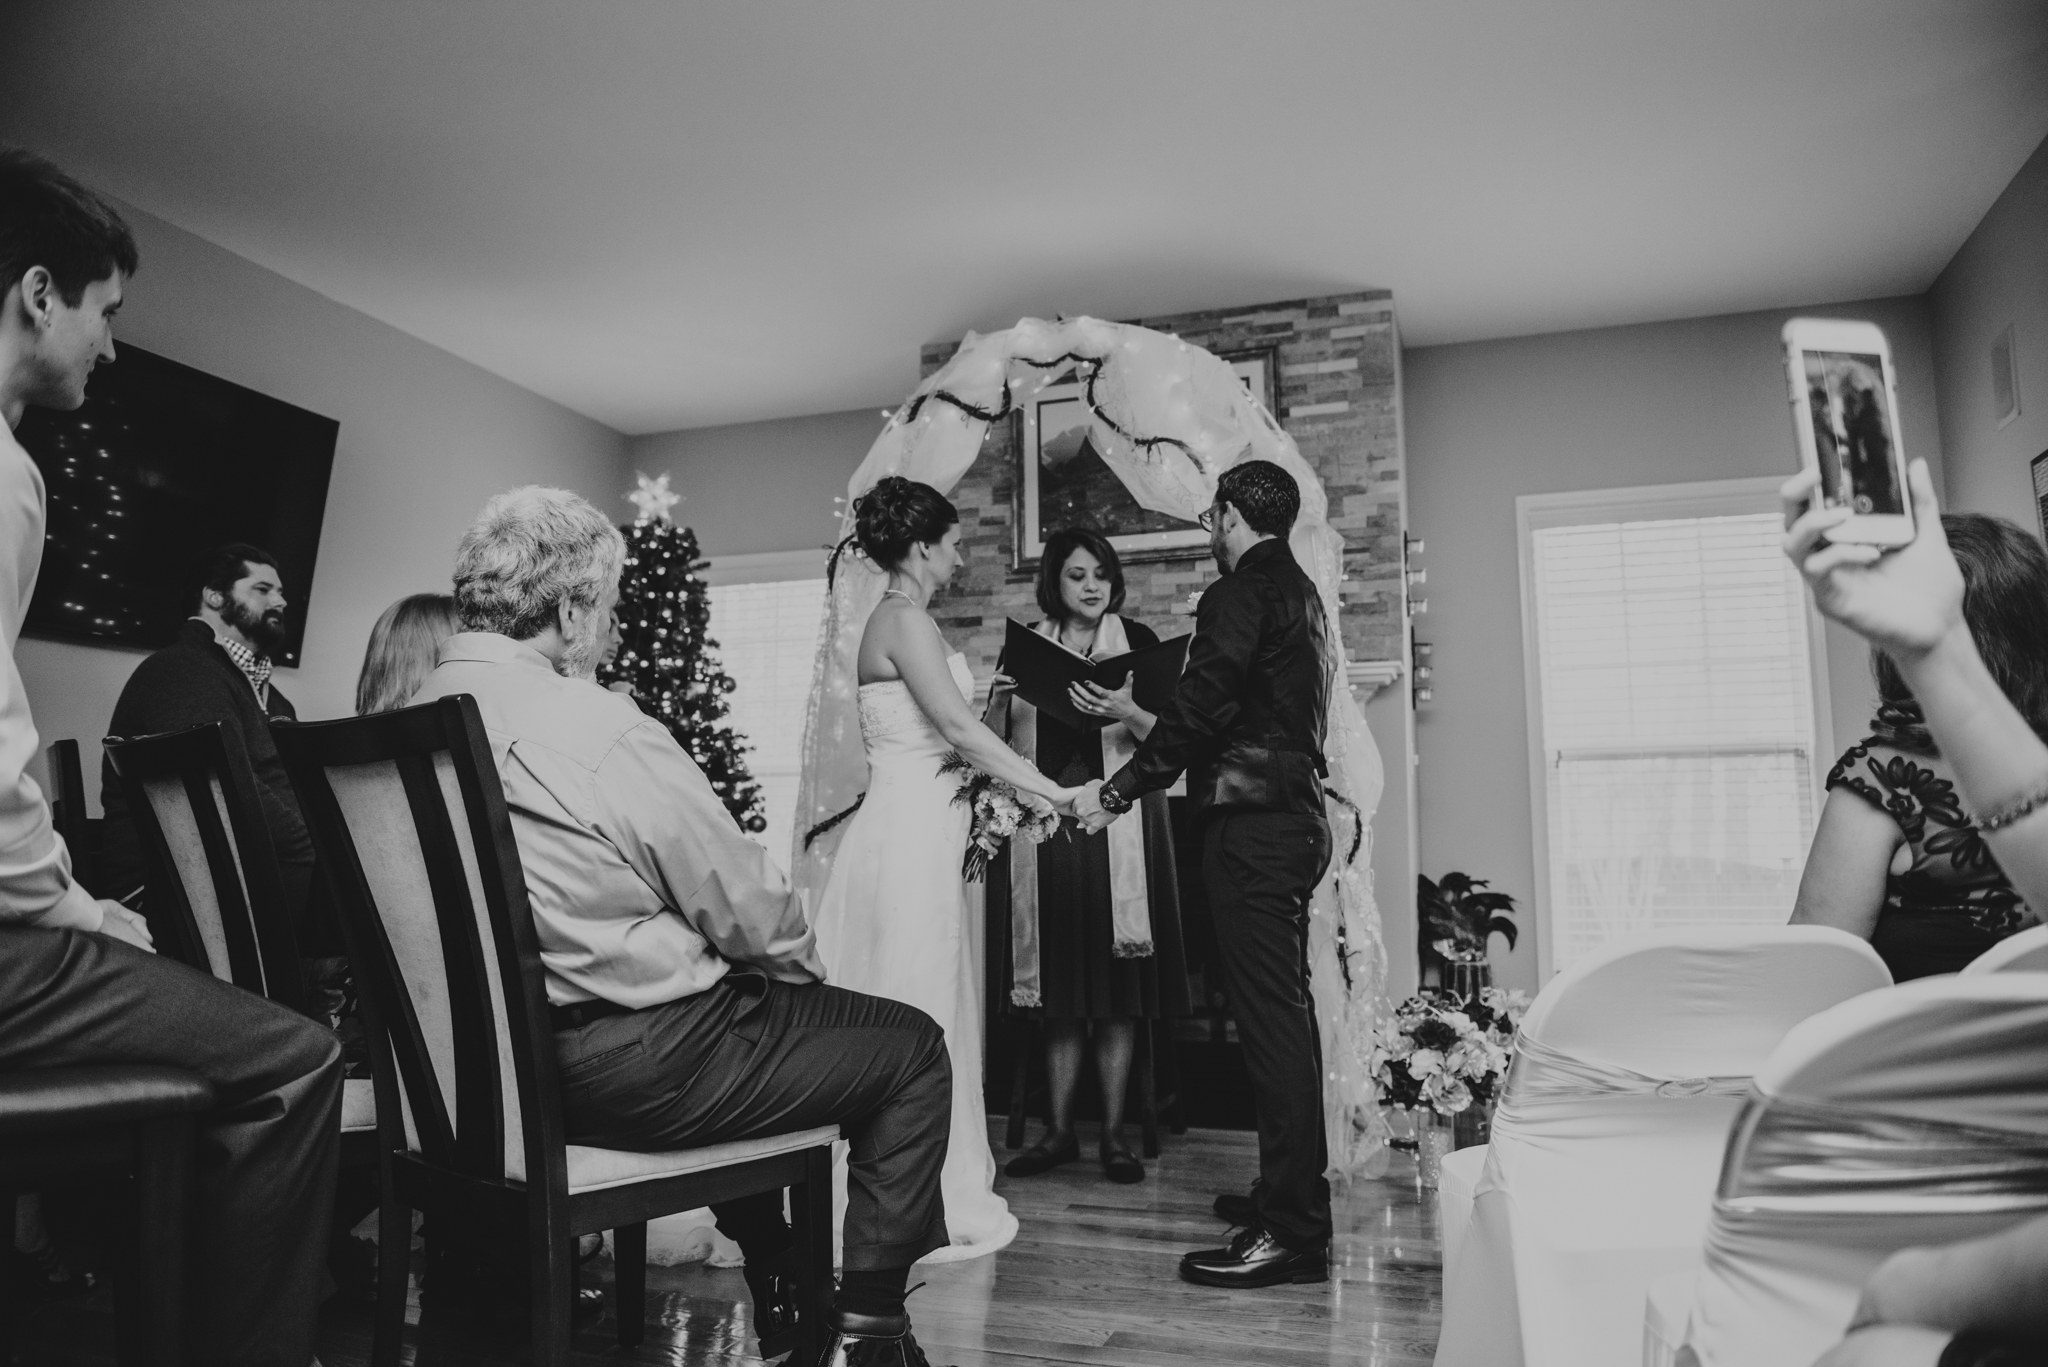 their-families-and-friends-watch-the-bride-and-groom-exchange-vows-at-their-intimate-home-wedding-in-Raleigh.jpg